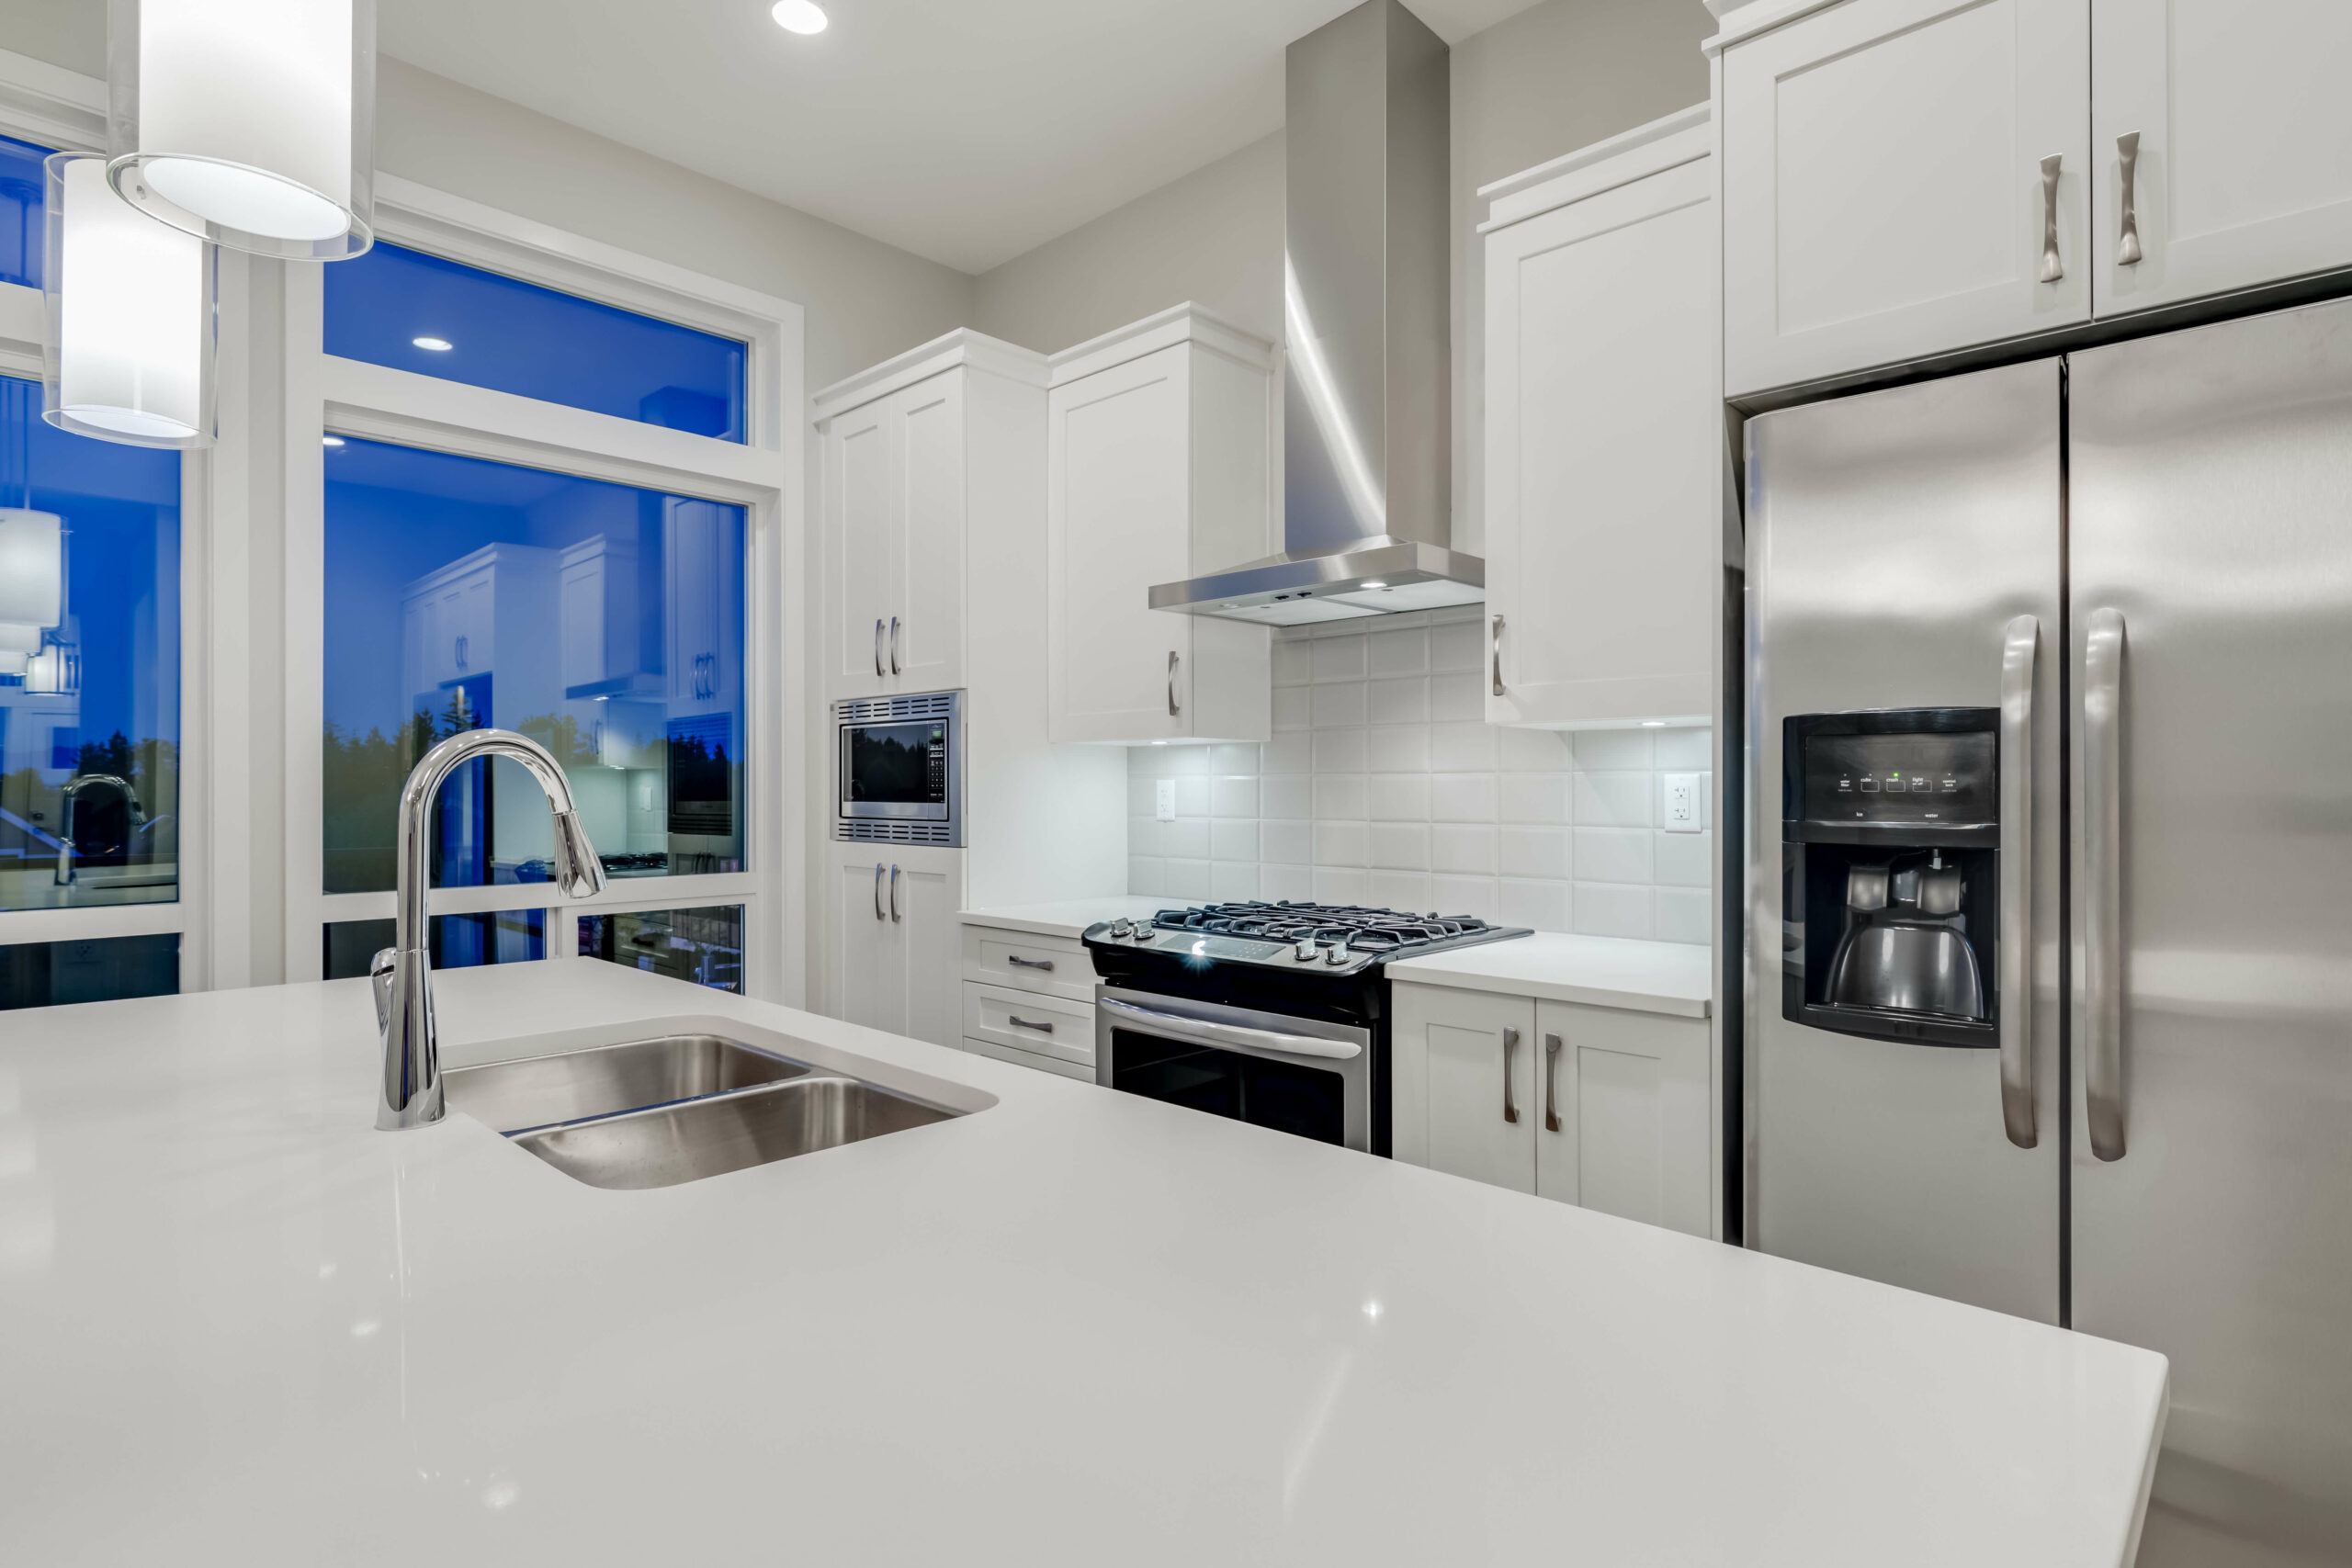 Laminate Countertops In New Orleans